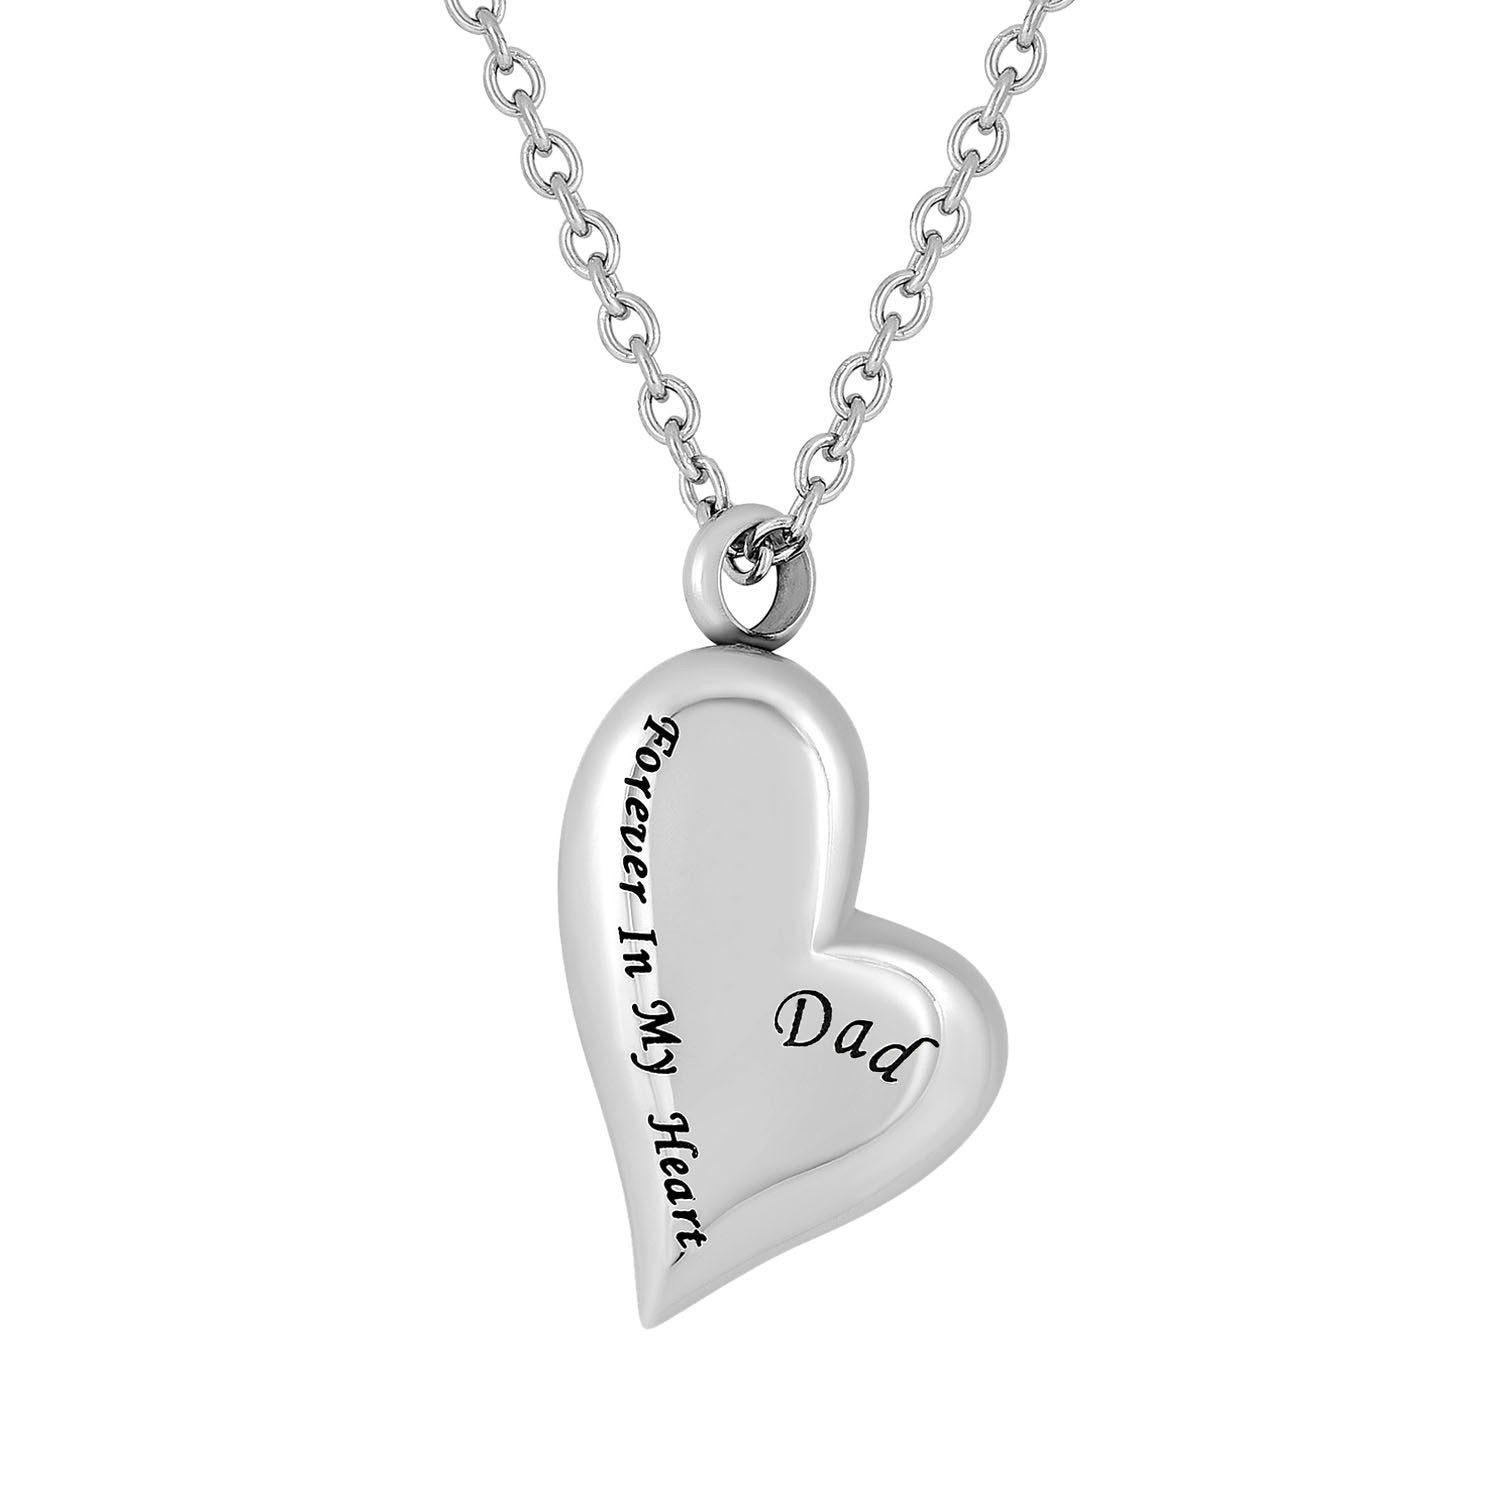 Cremation Jewelry Necklace for Ashes - Dad Forever In My Heart